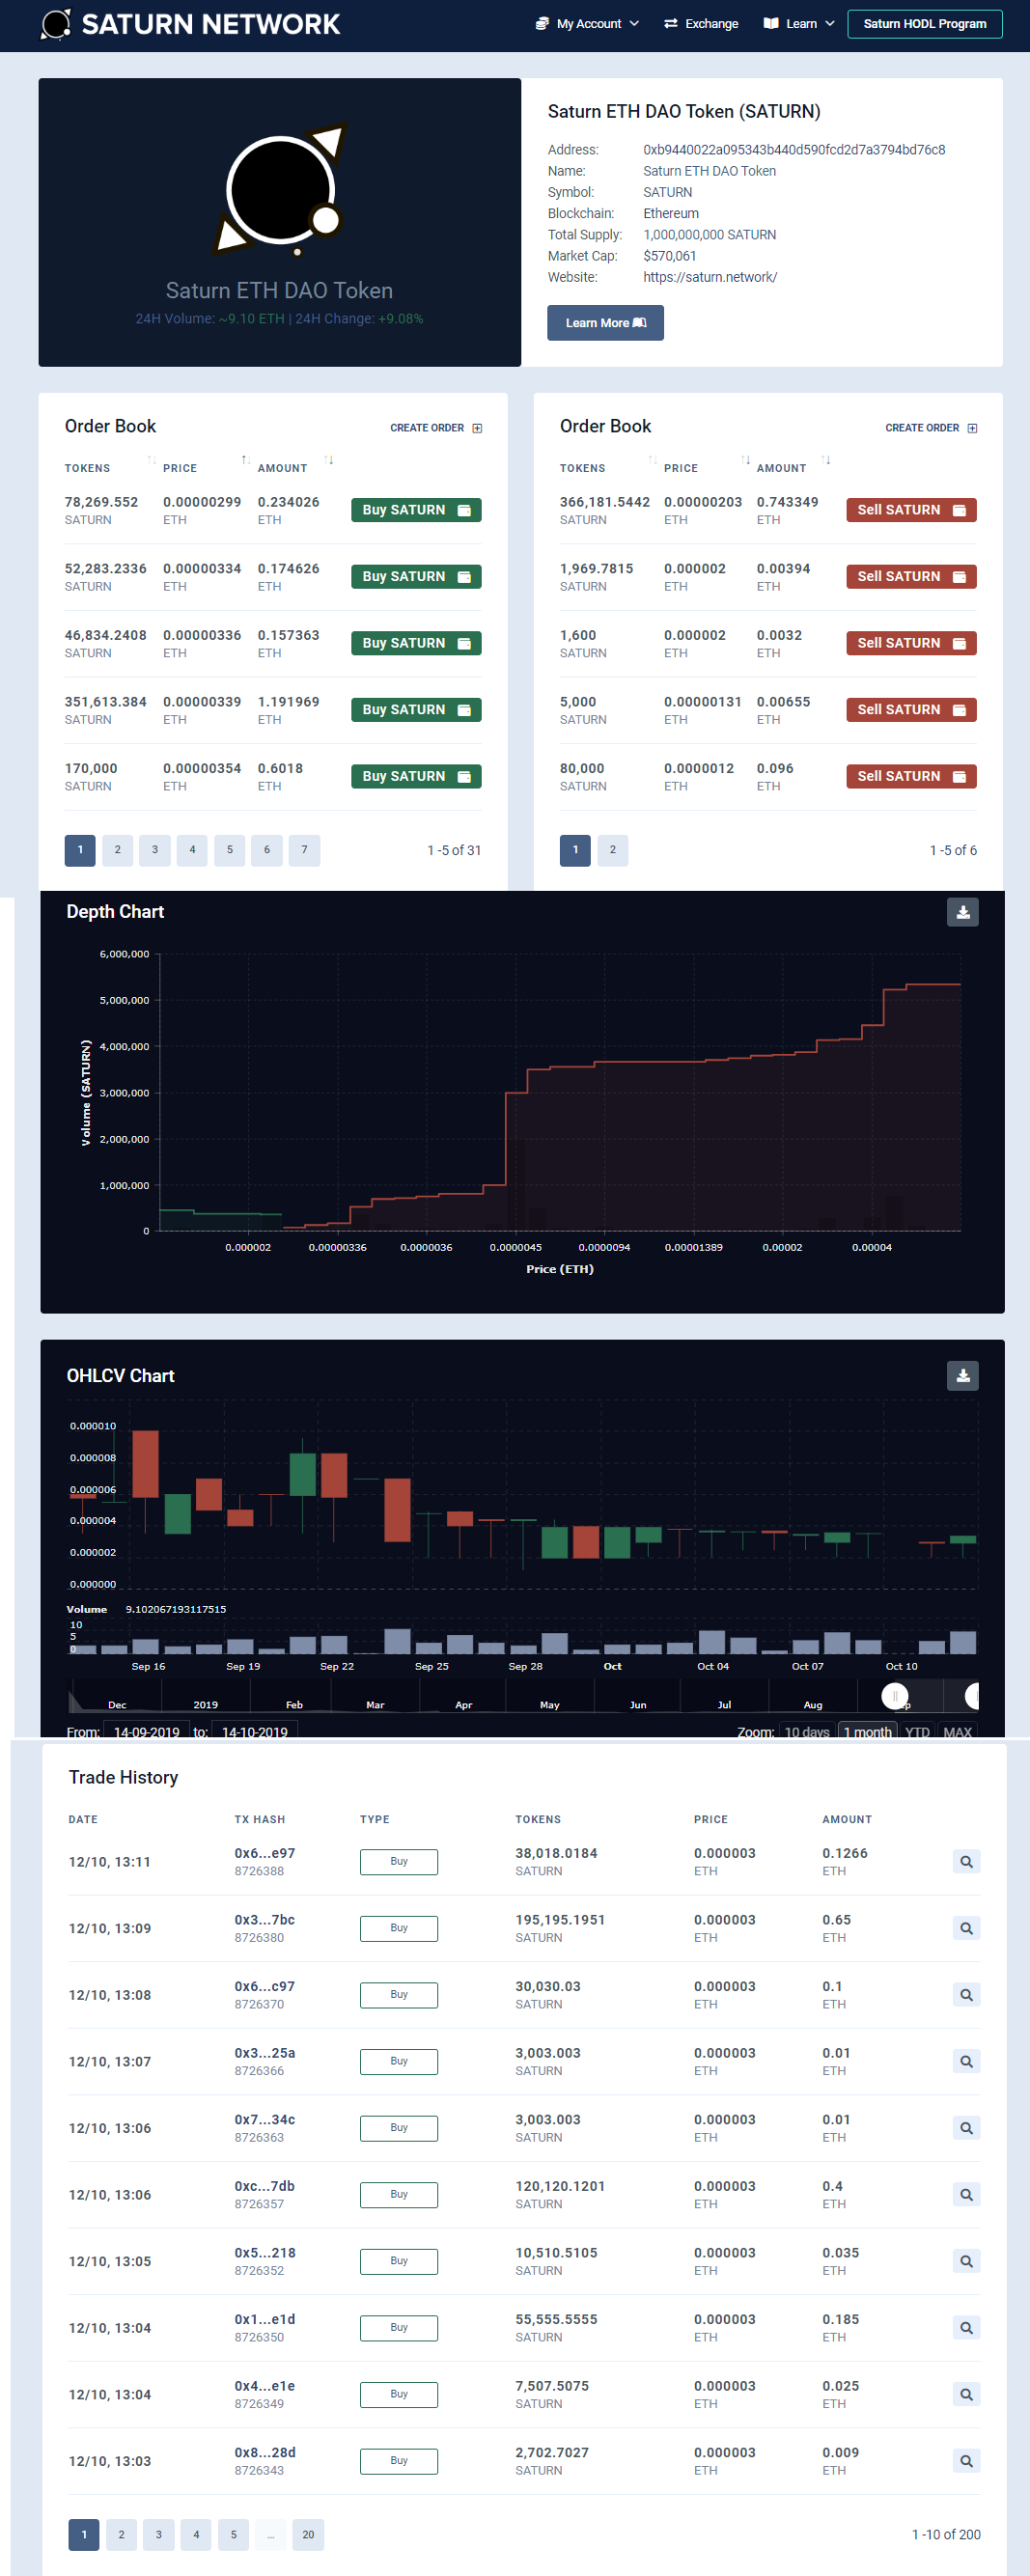 Saturn Network Trading View